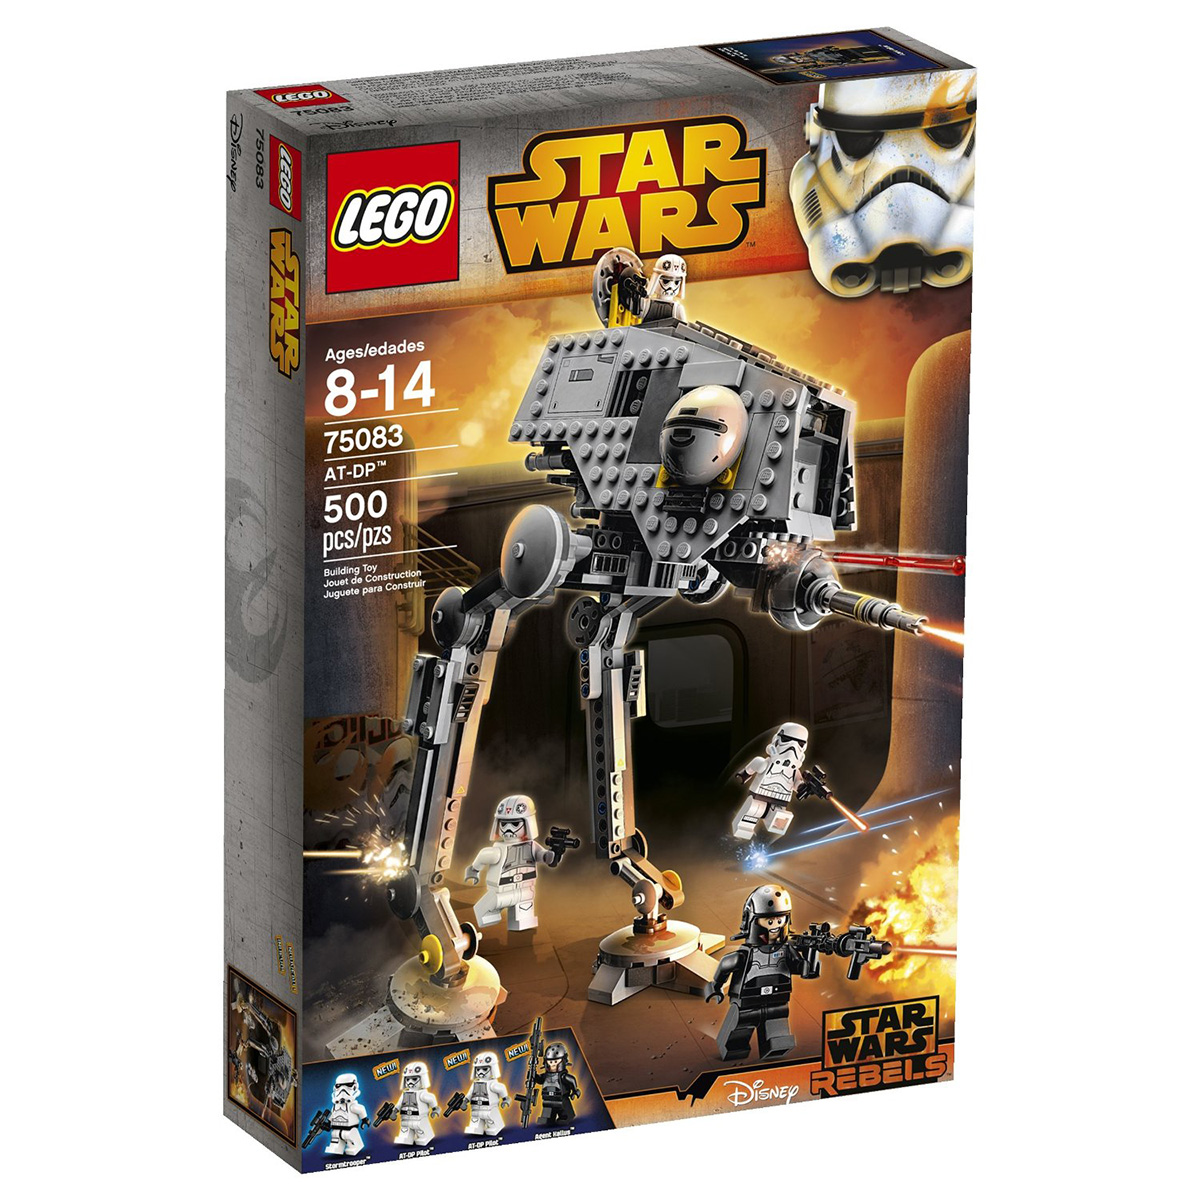 Do choi Lego 75083 – Co may AT - DP